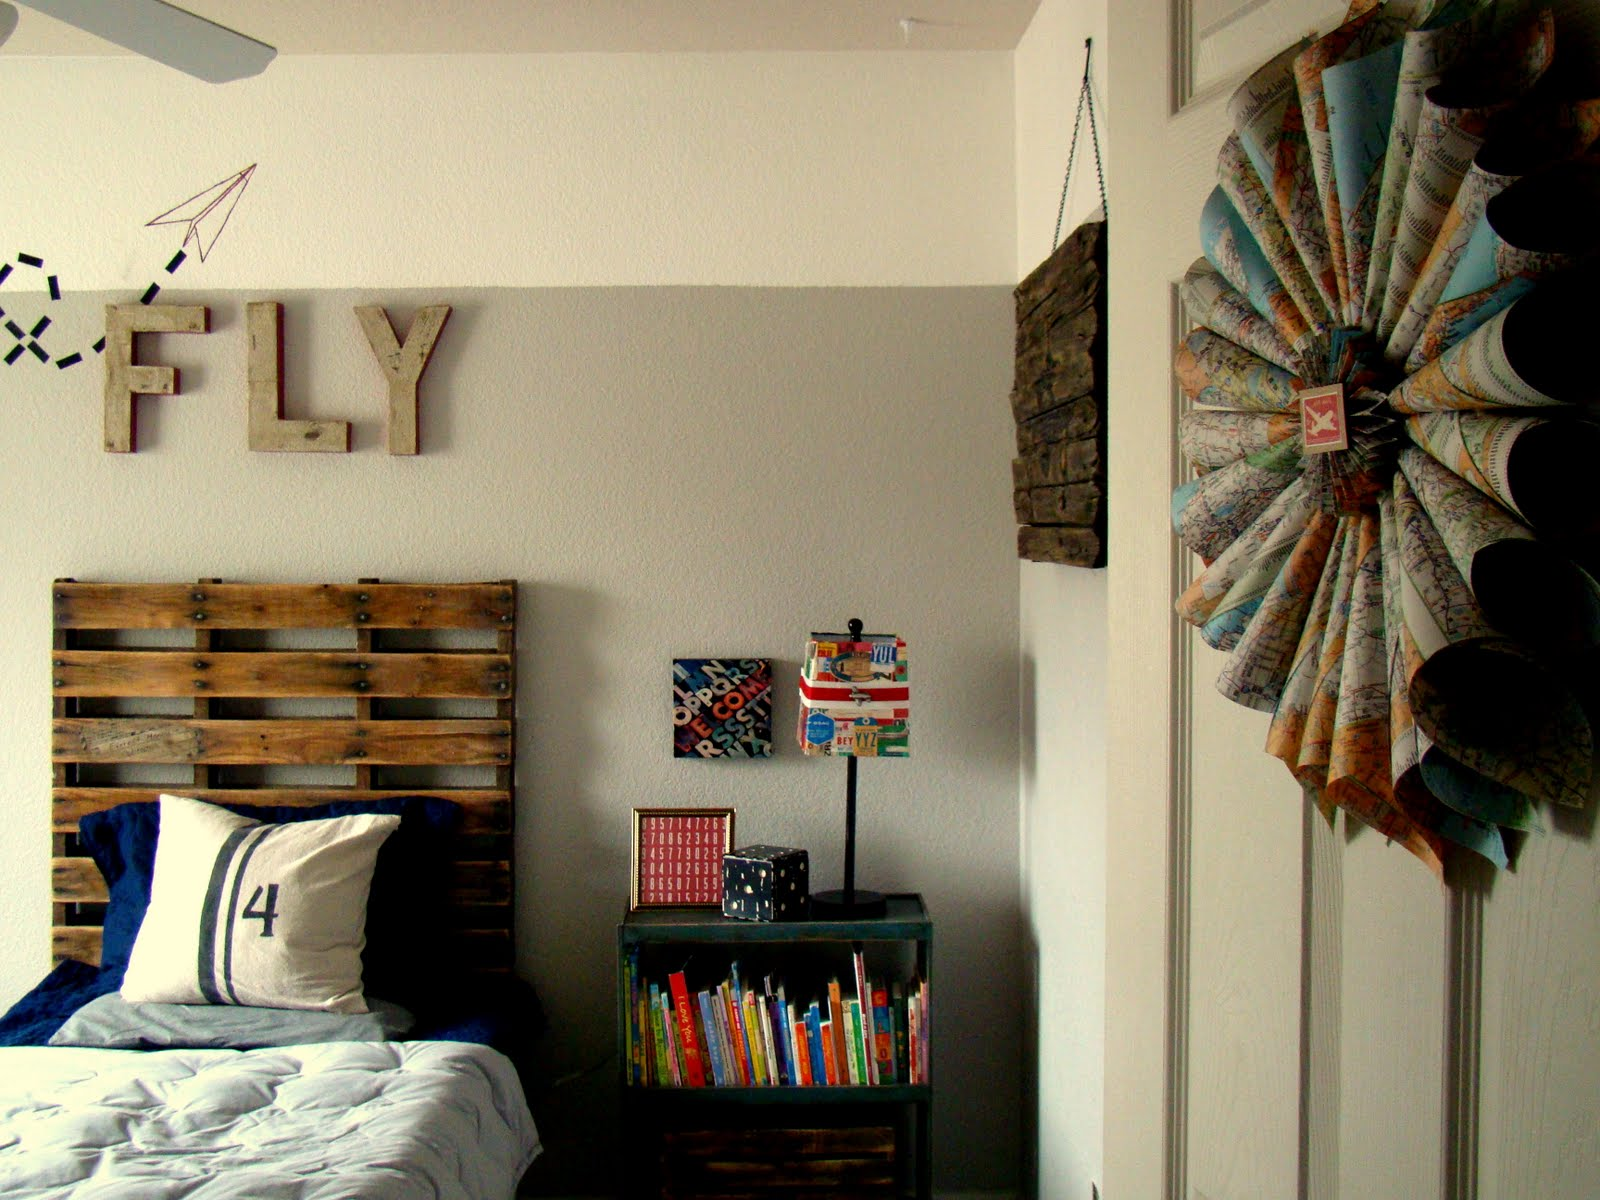 Room decorating before and after makeovers - Boys room decor ...